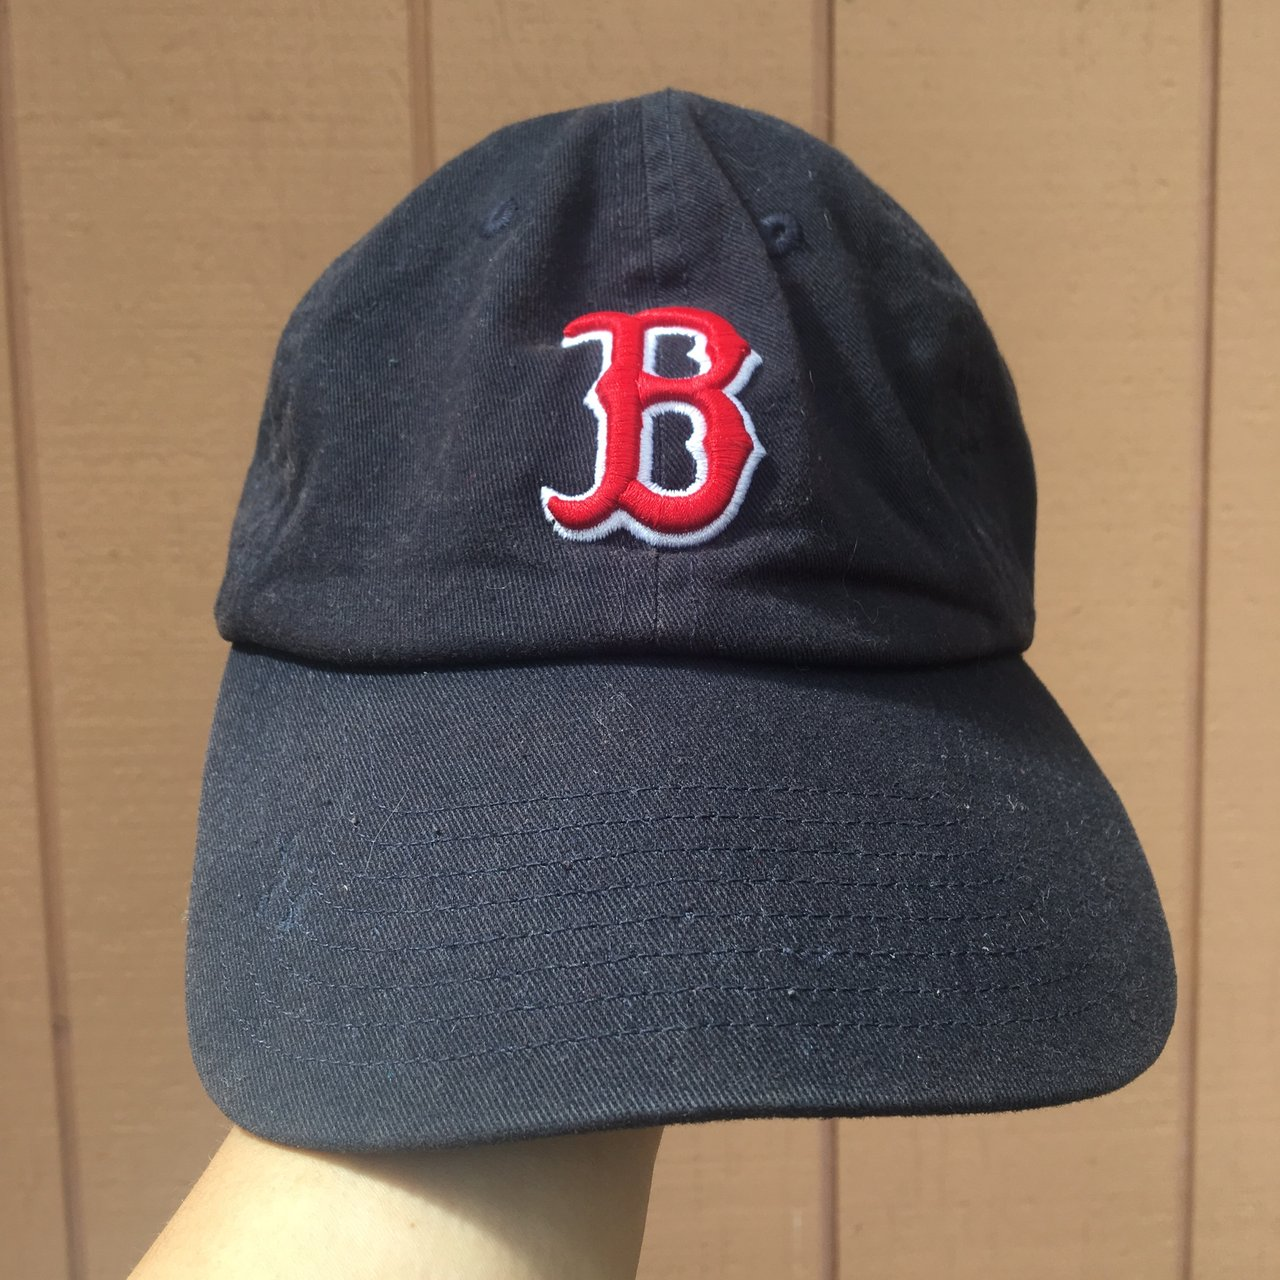 best service e2fa9 8493d 8 months ago. flagstaff united states. boston red sox dad cap